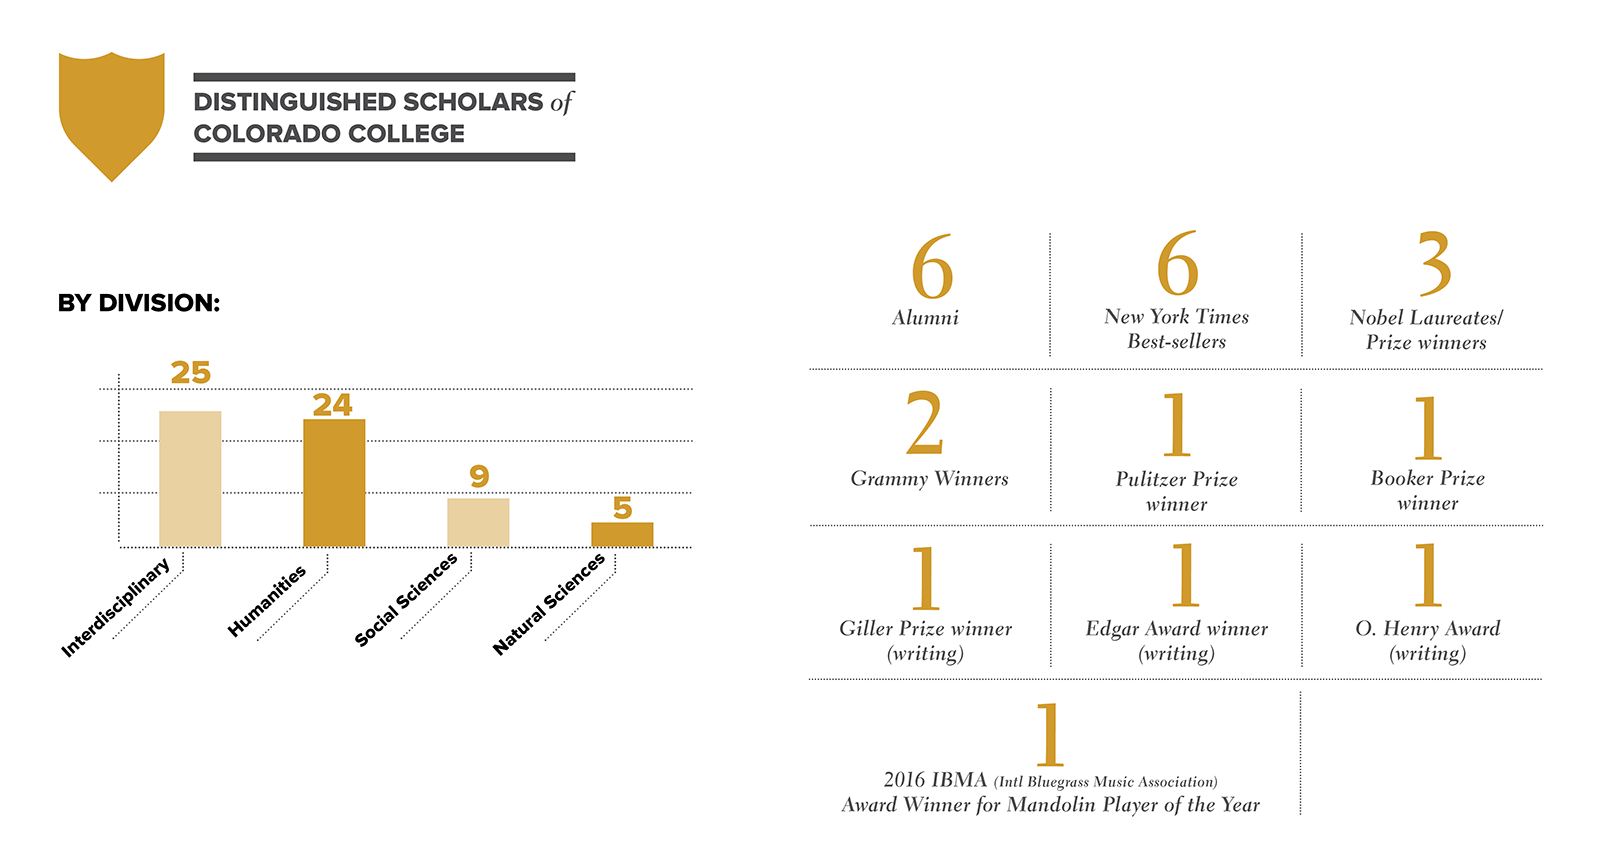 Distinguished Scholars Infographic